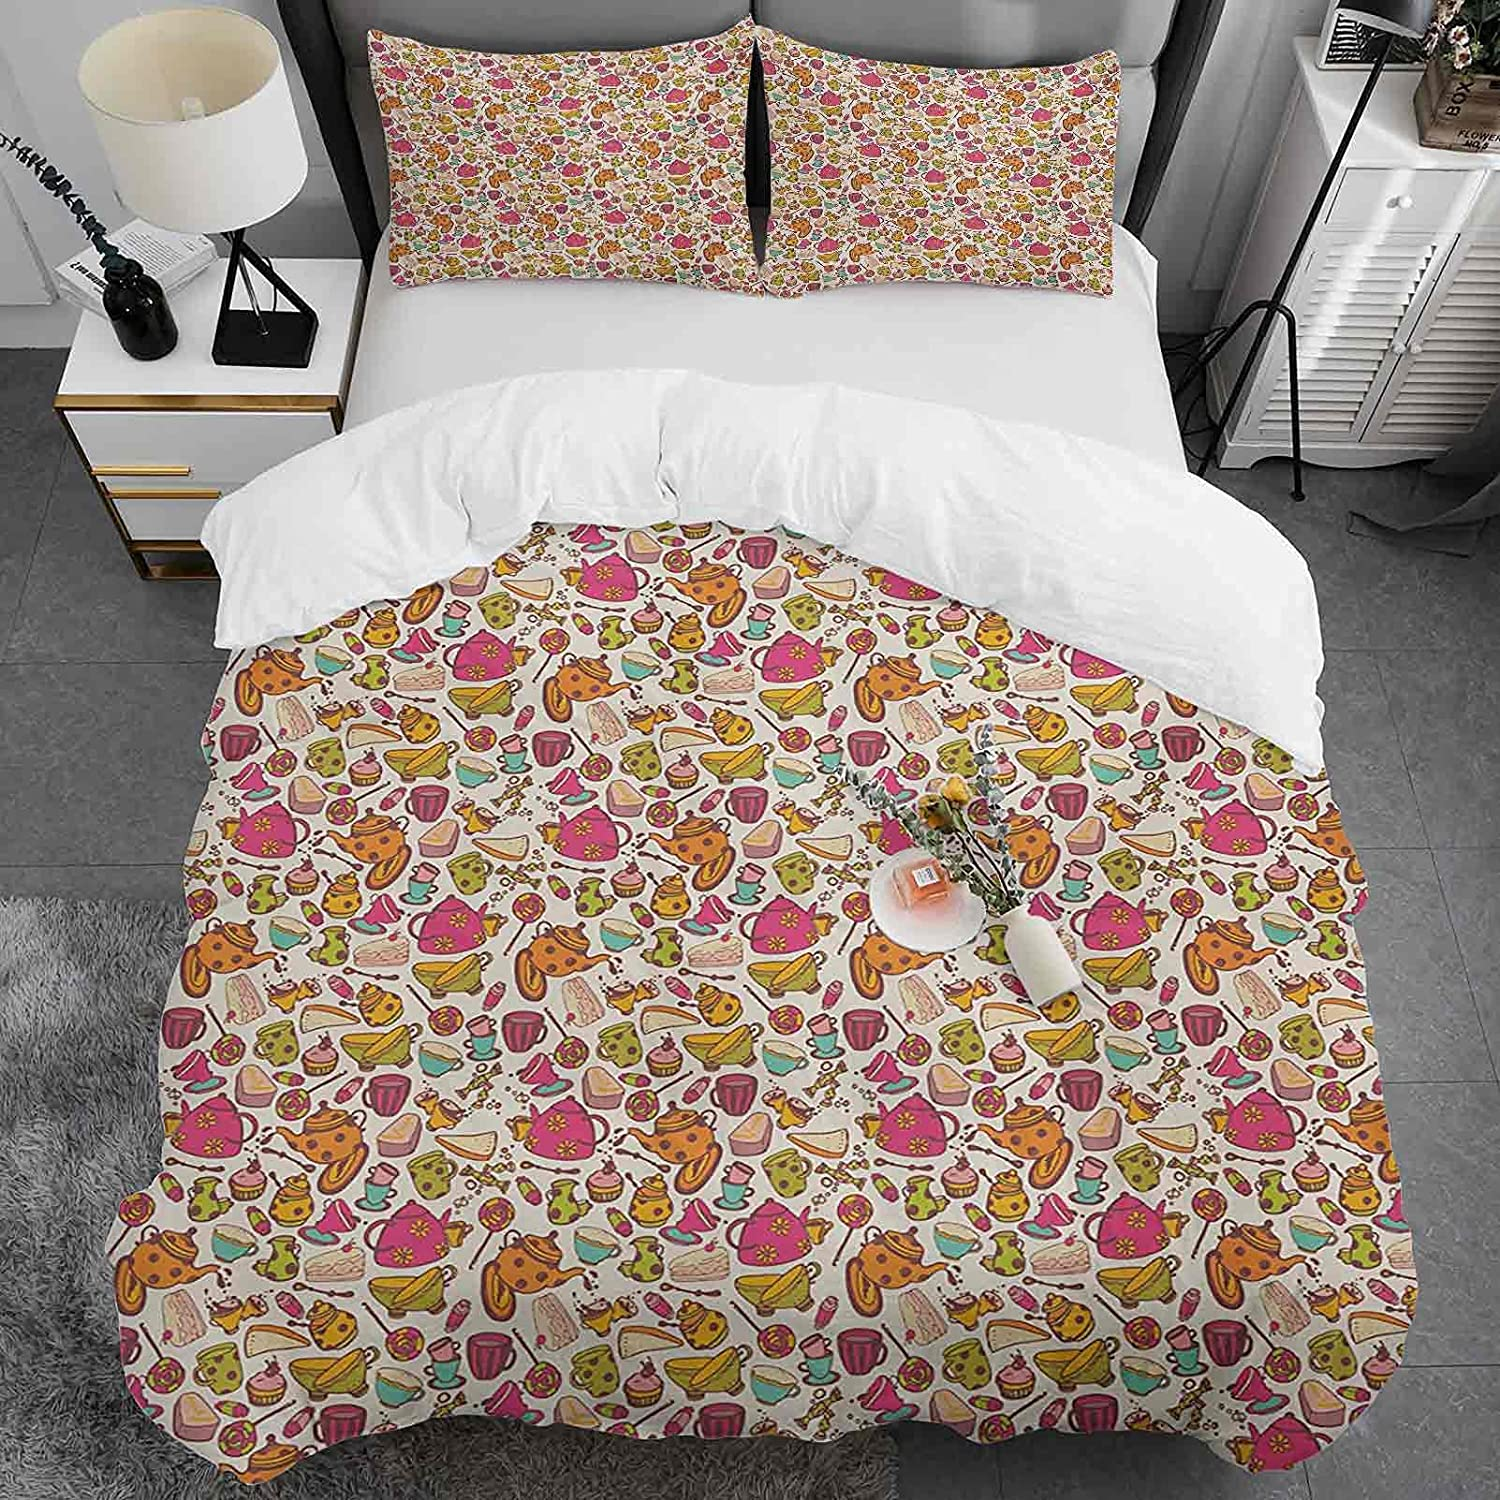 Kids Duvet In stock Cover Twin Size Tea Albuquerque Mall Party Double Pattern Soft Ultra